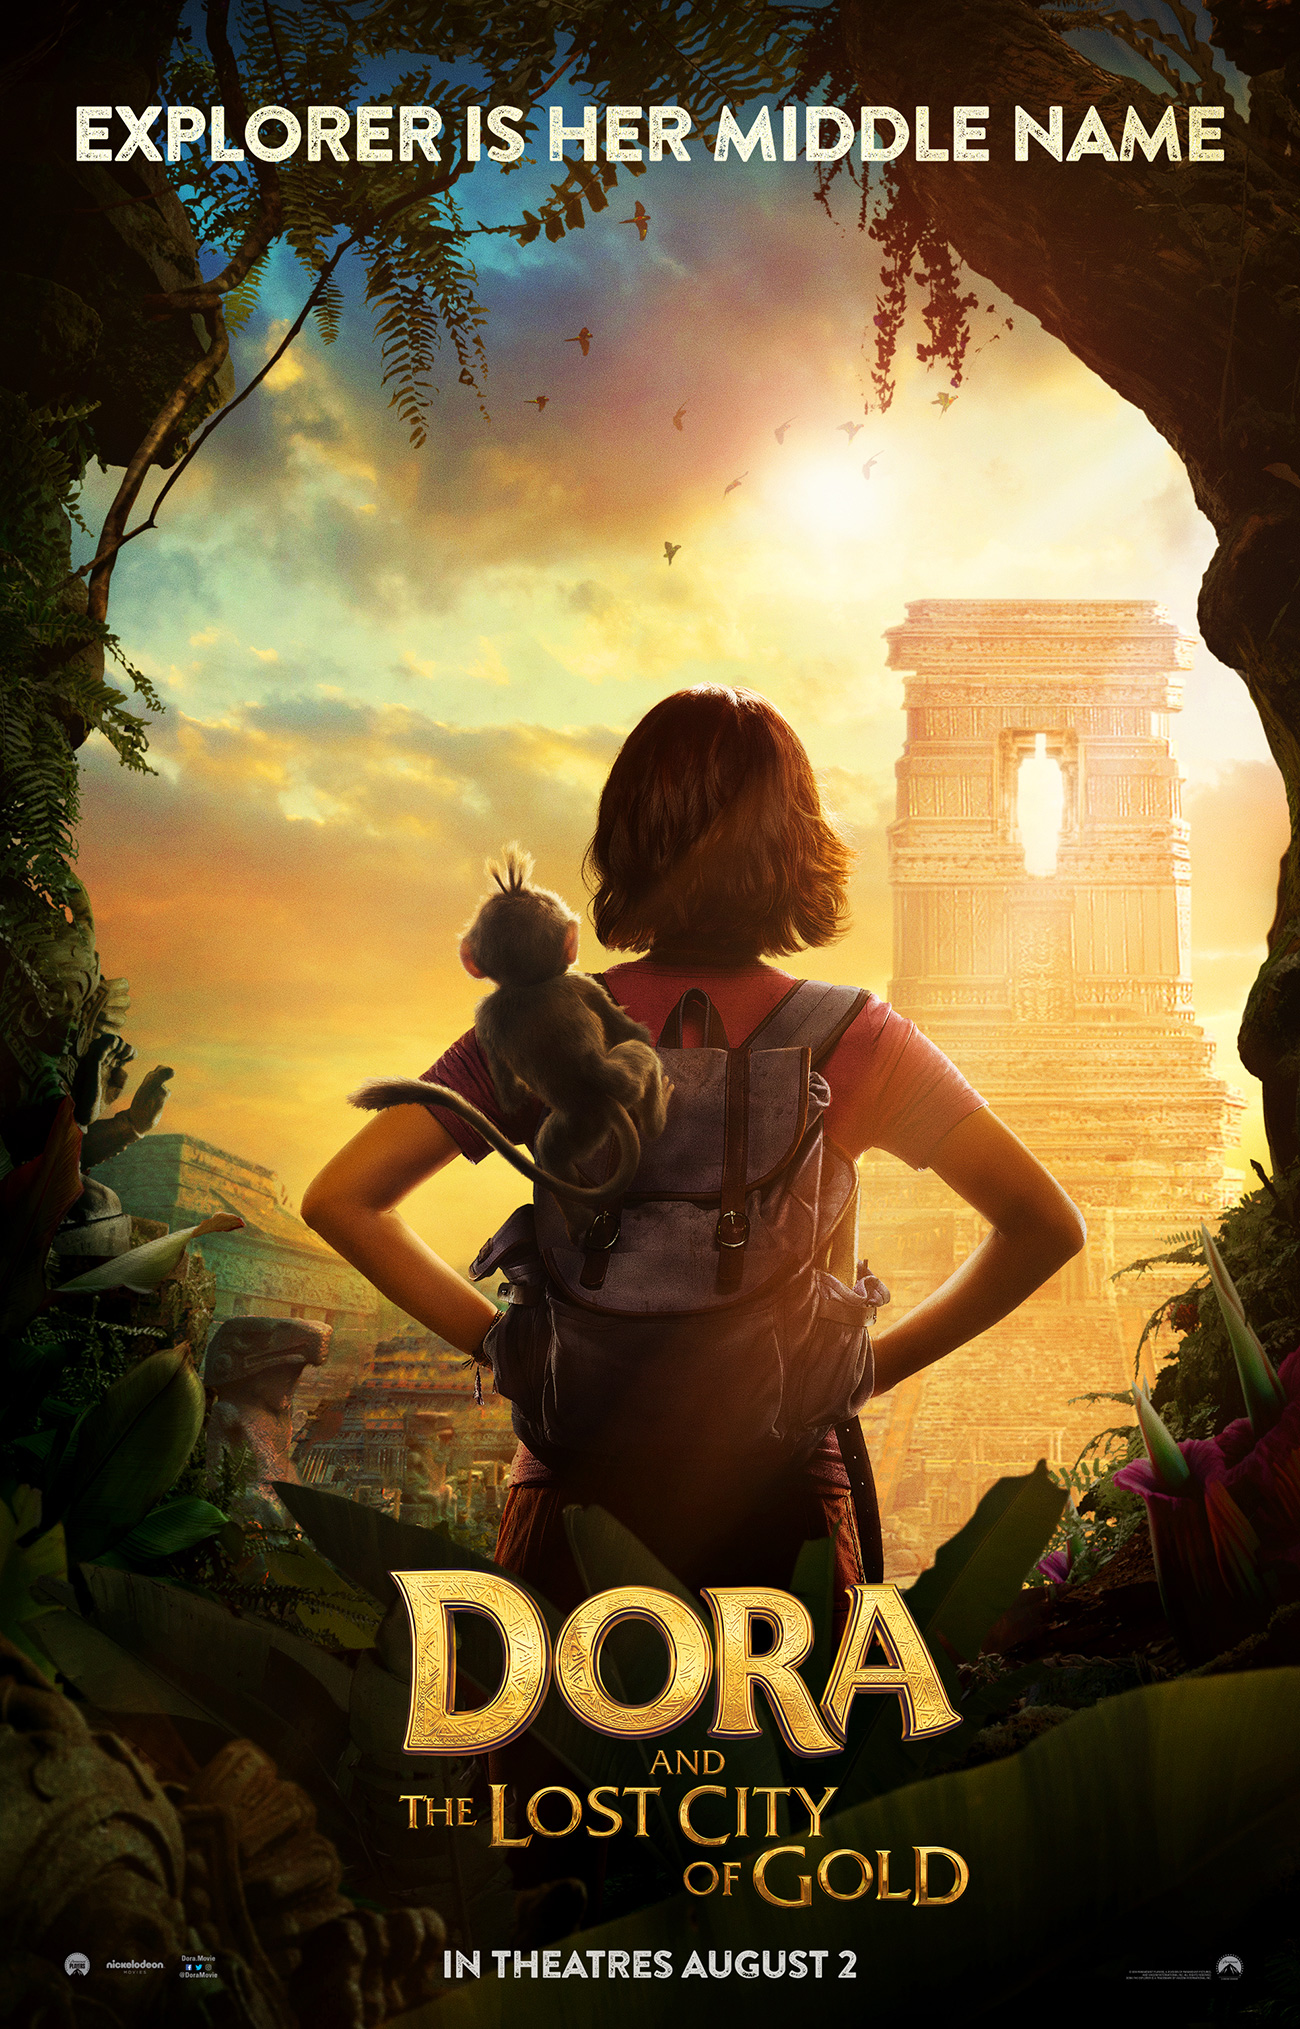 Dora and the Lost City of Gold 1-Sheet.jpg